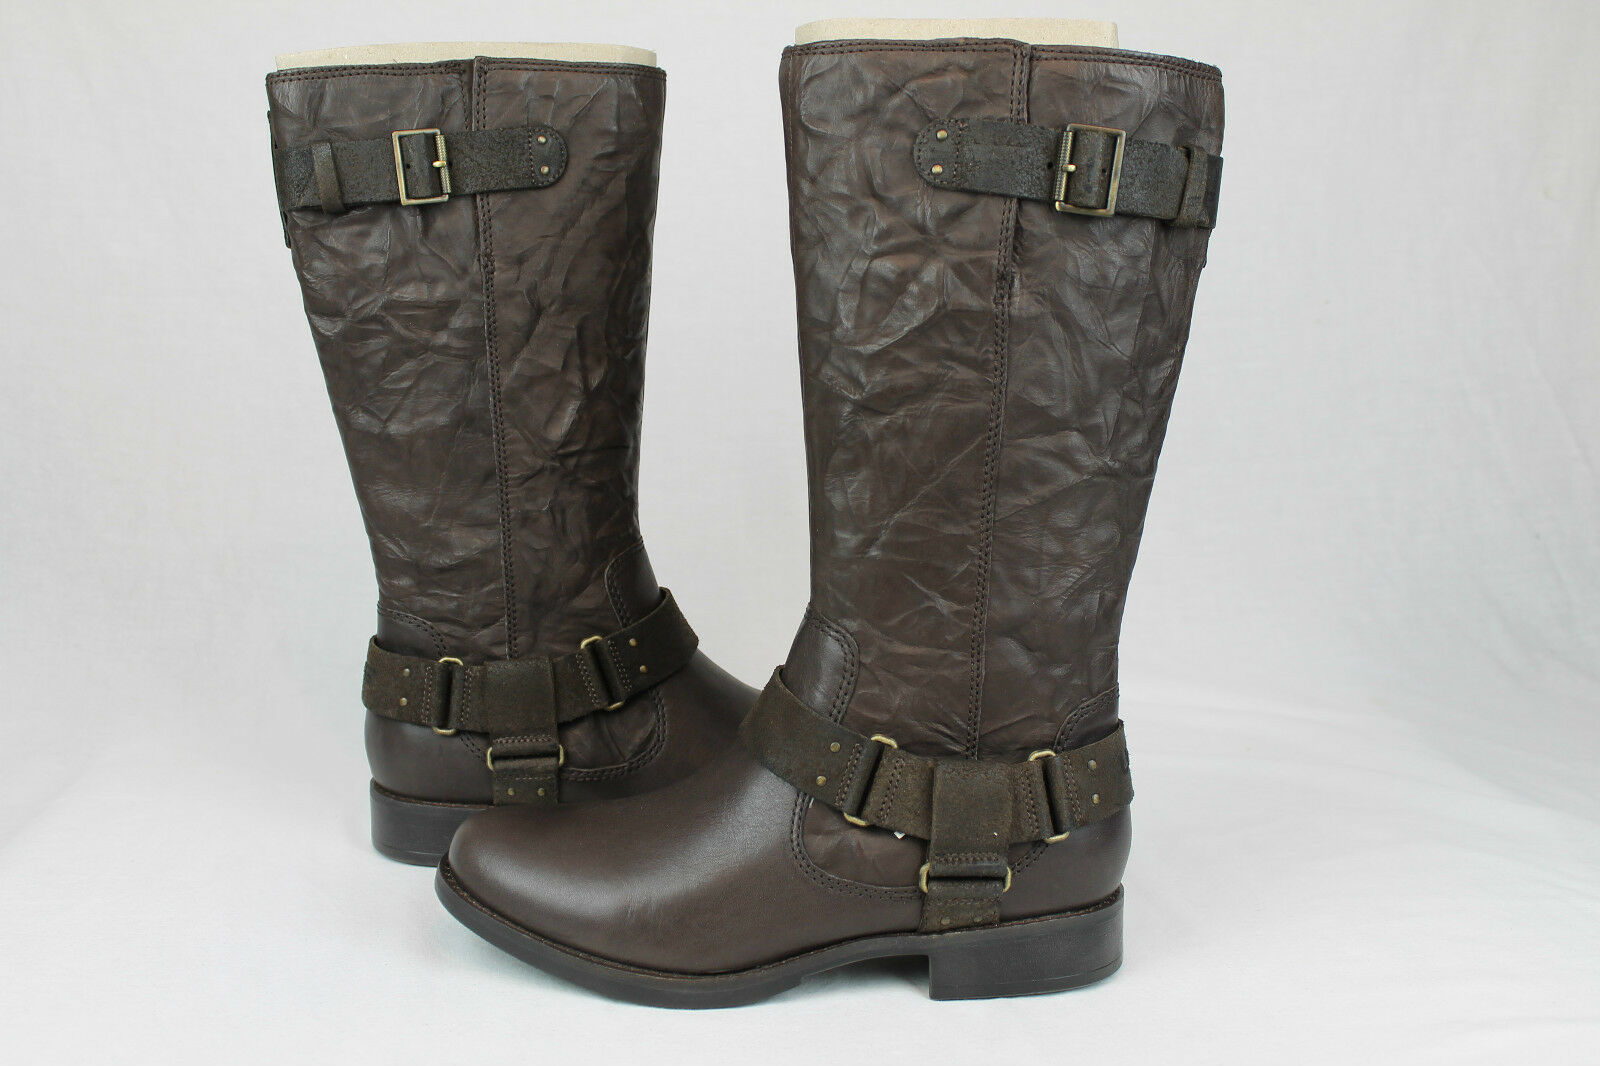 96dd75498f0 UGG Australia Damien Textured Leather Tall Lodge Brown BOOTS Size 9 ...